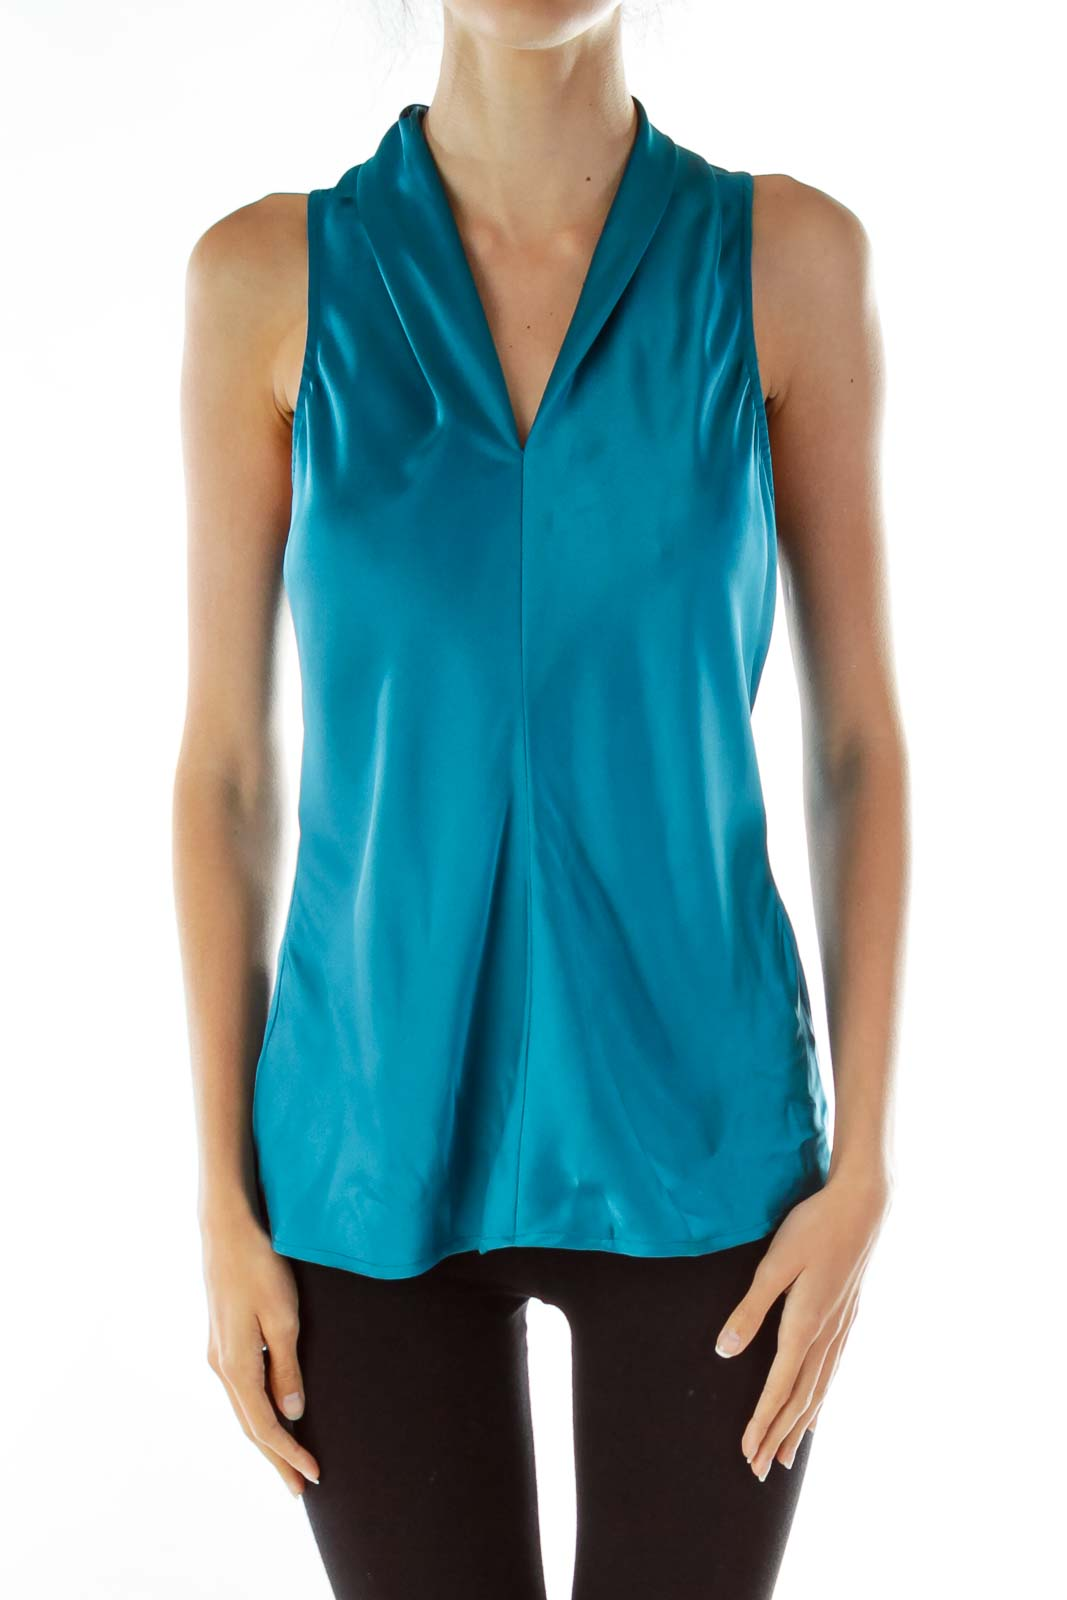 Teal Satin Sleeveless Blouse Front